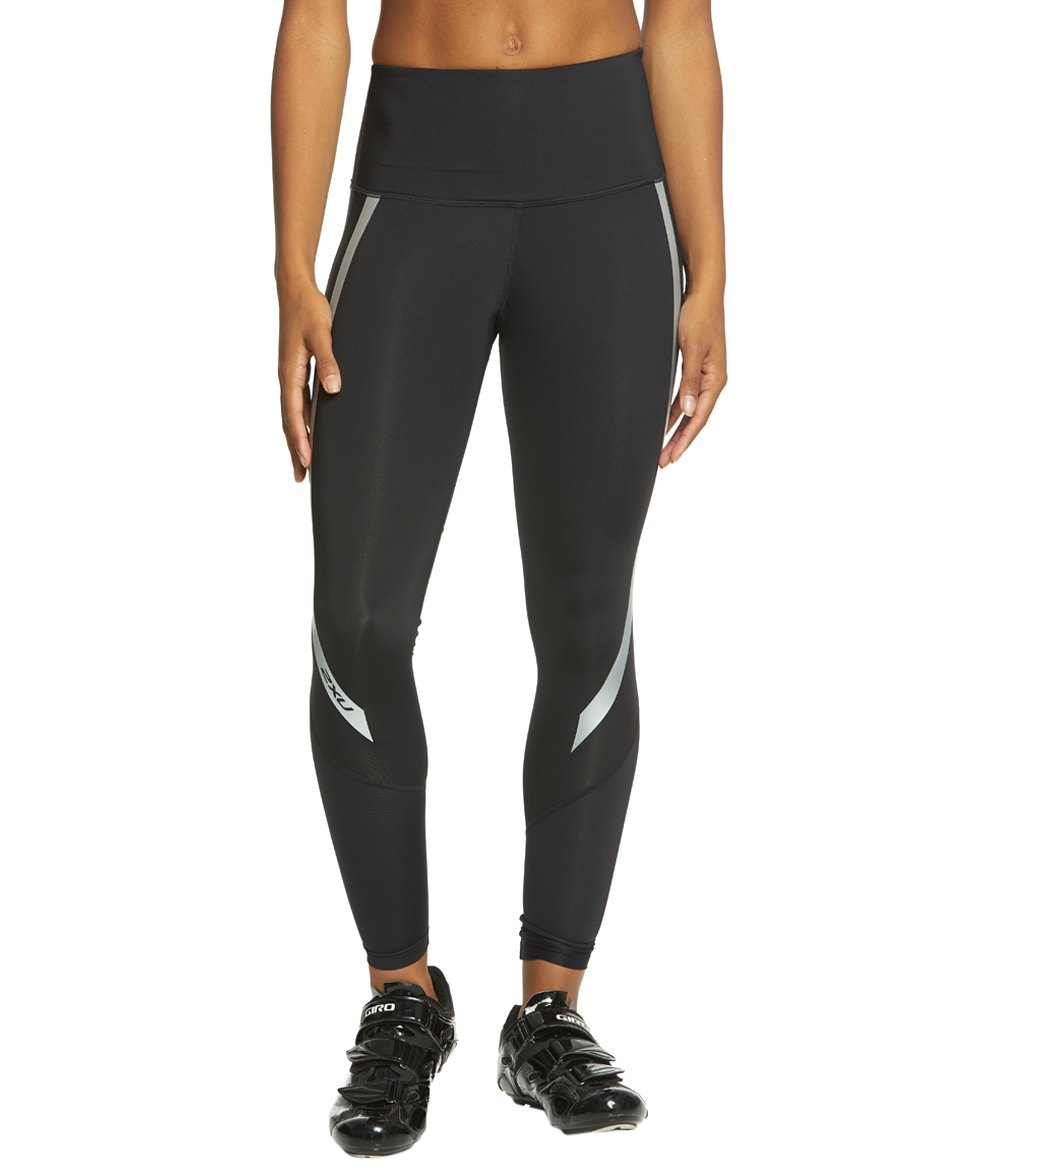 446b4a73 2XU Women's Hi-Rise Compression Tights at SwimOutlet.com - Free Shipping